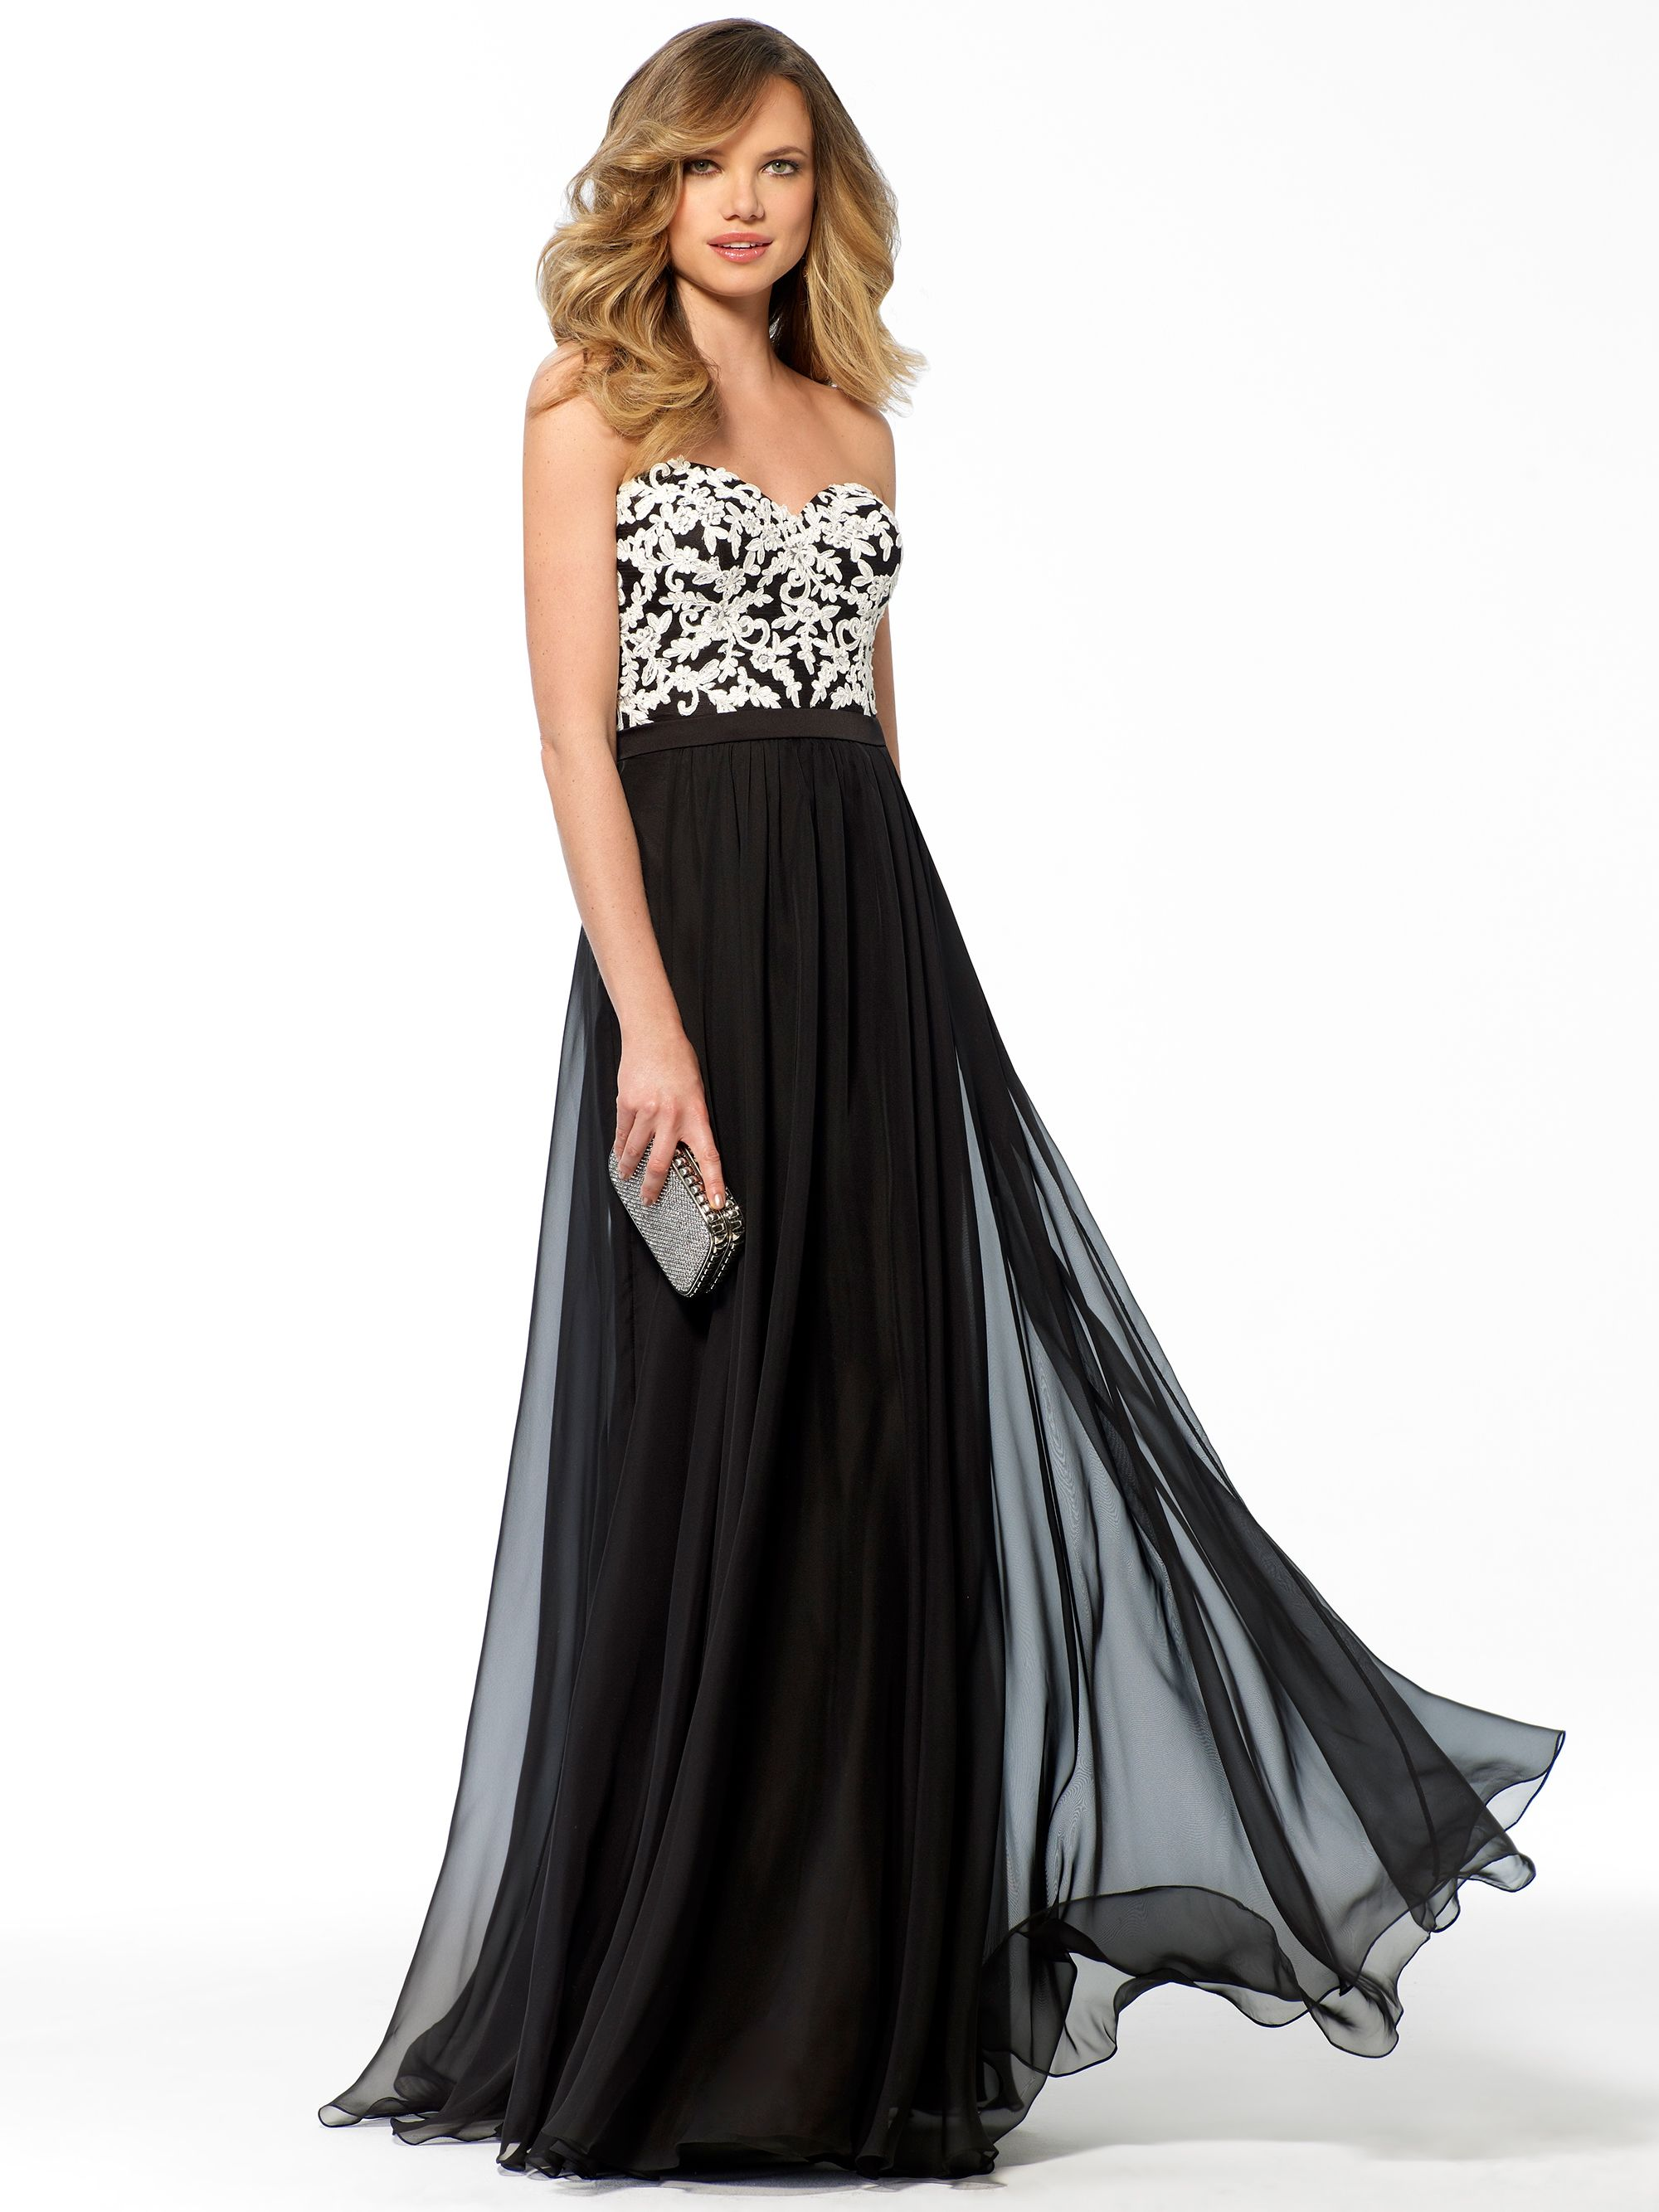 Black dress gown - Flowy And Fabulous Black And White Lace Bustier Dress